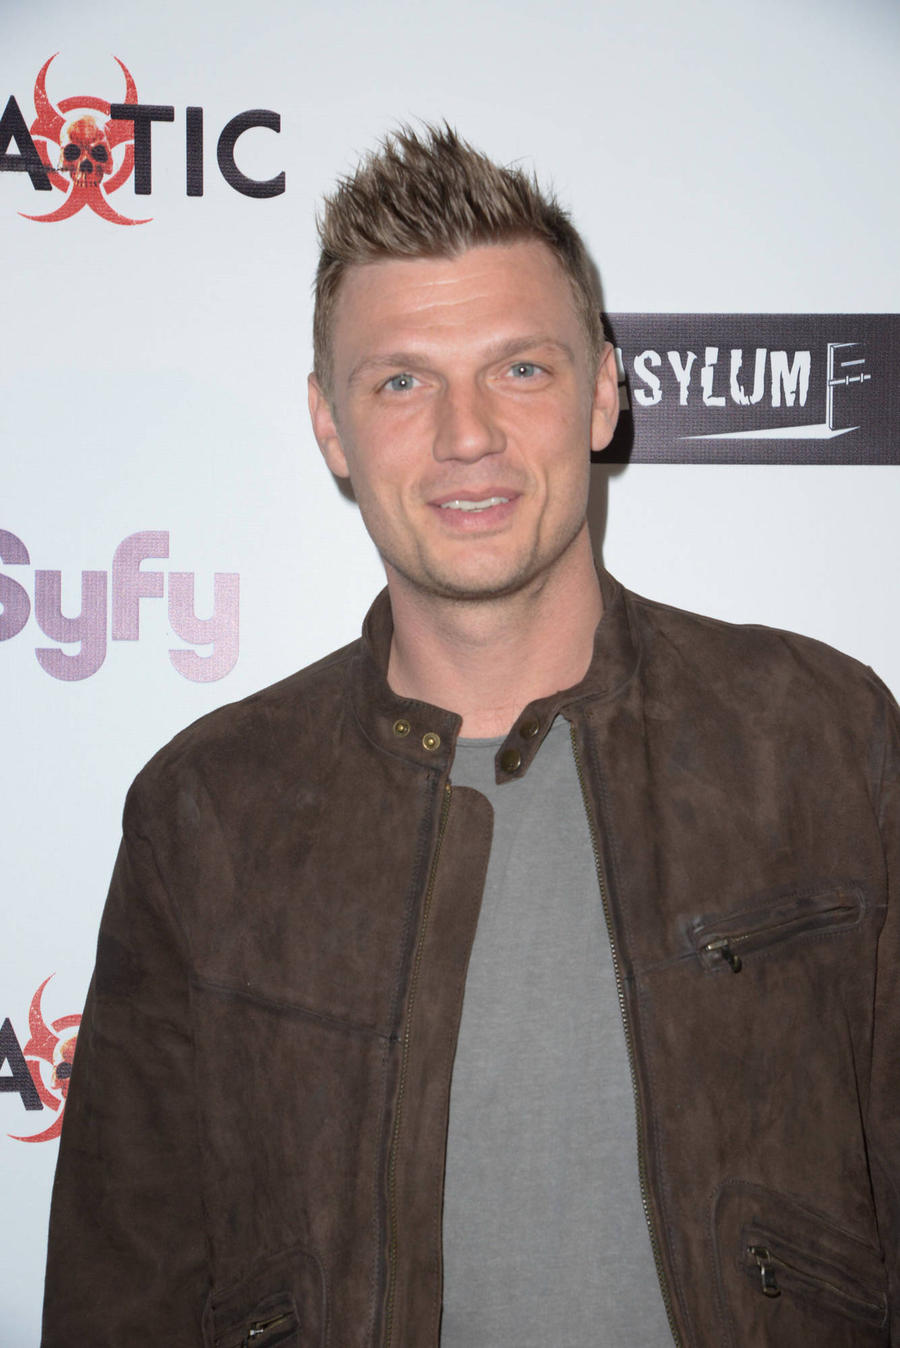 Nick Carter Planning Charity Concert Near Bar Brawl Location